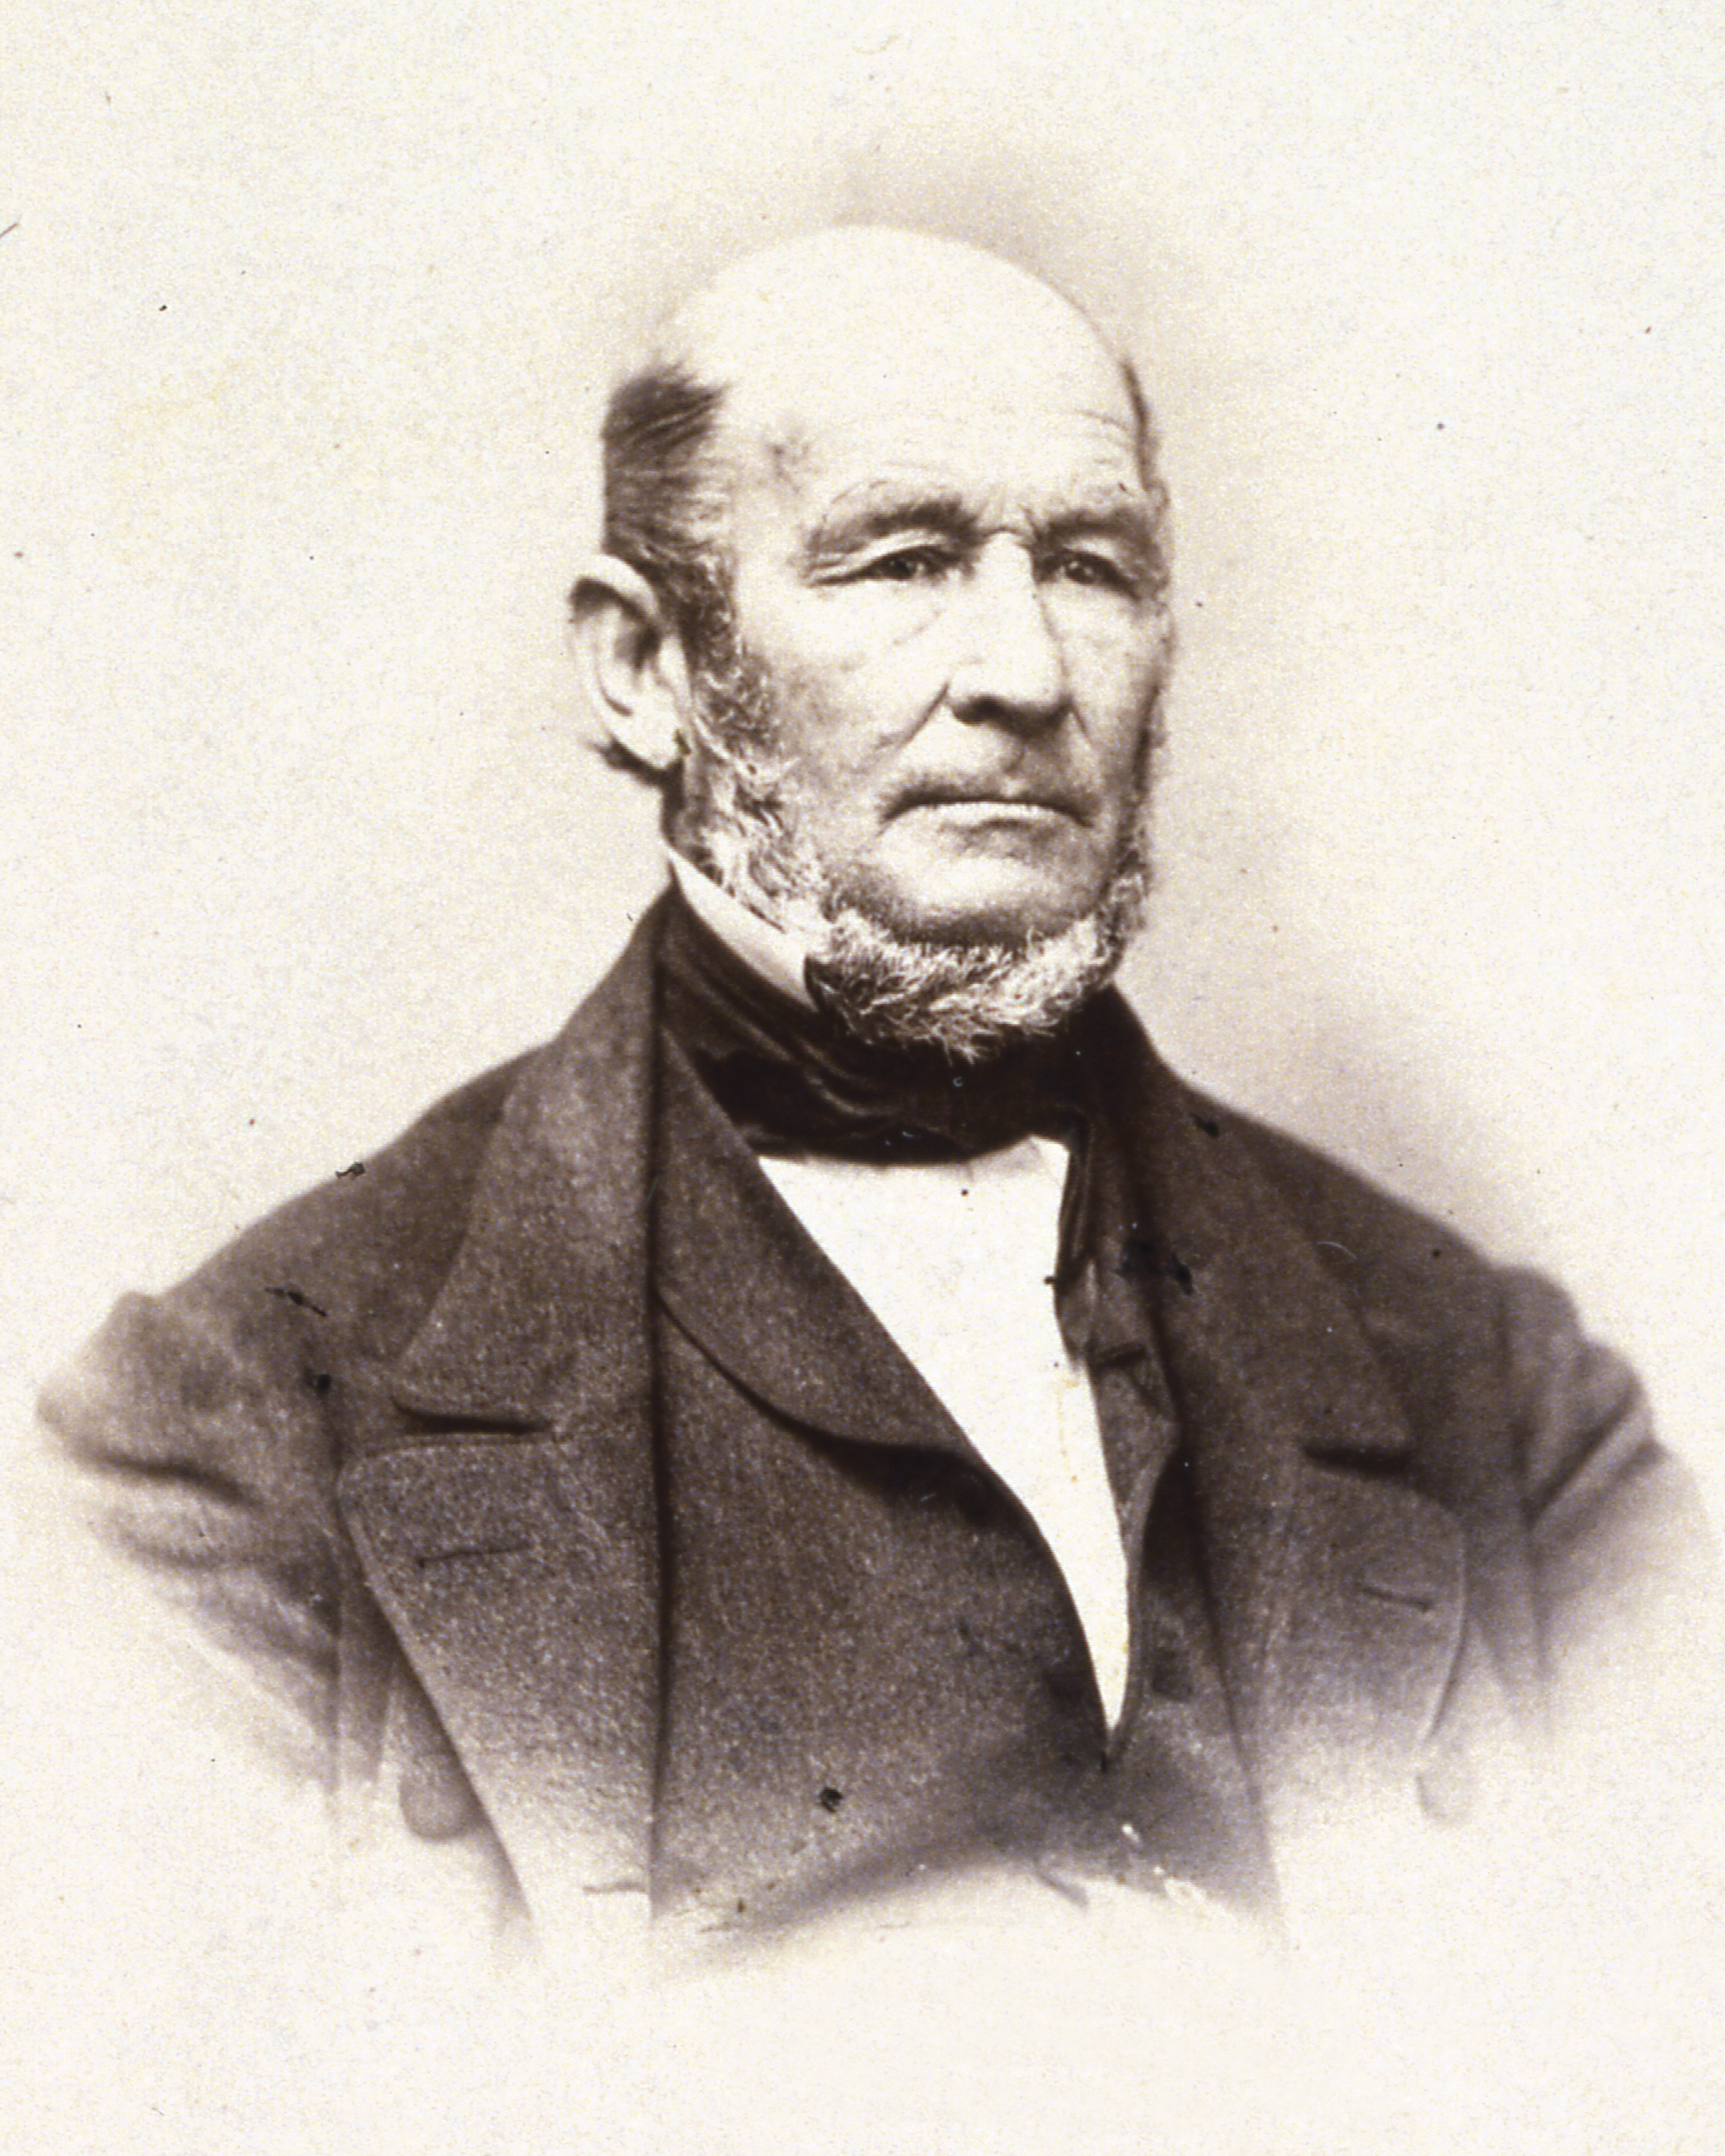 A historic photo of Heber C. Kimball